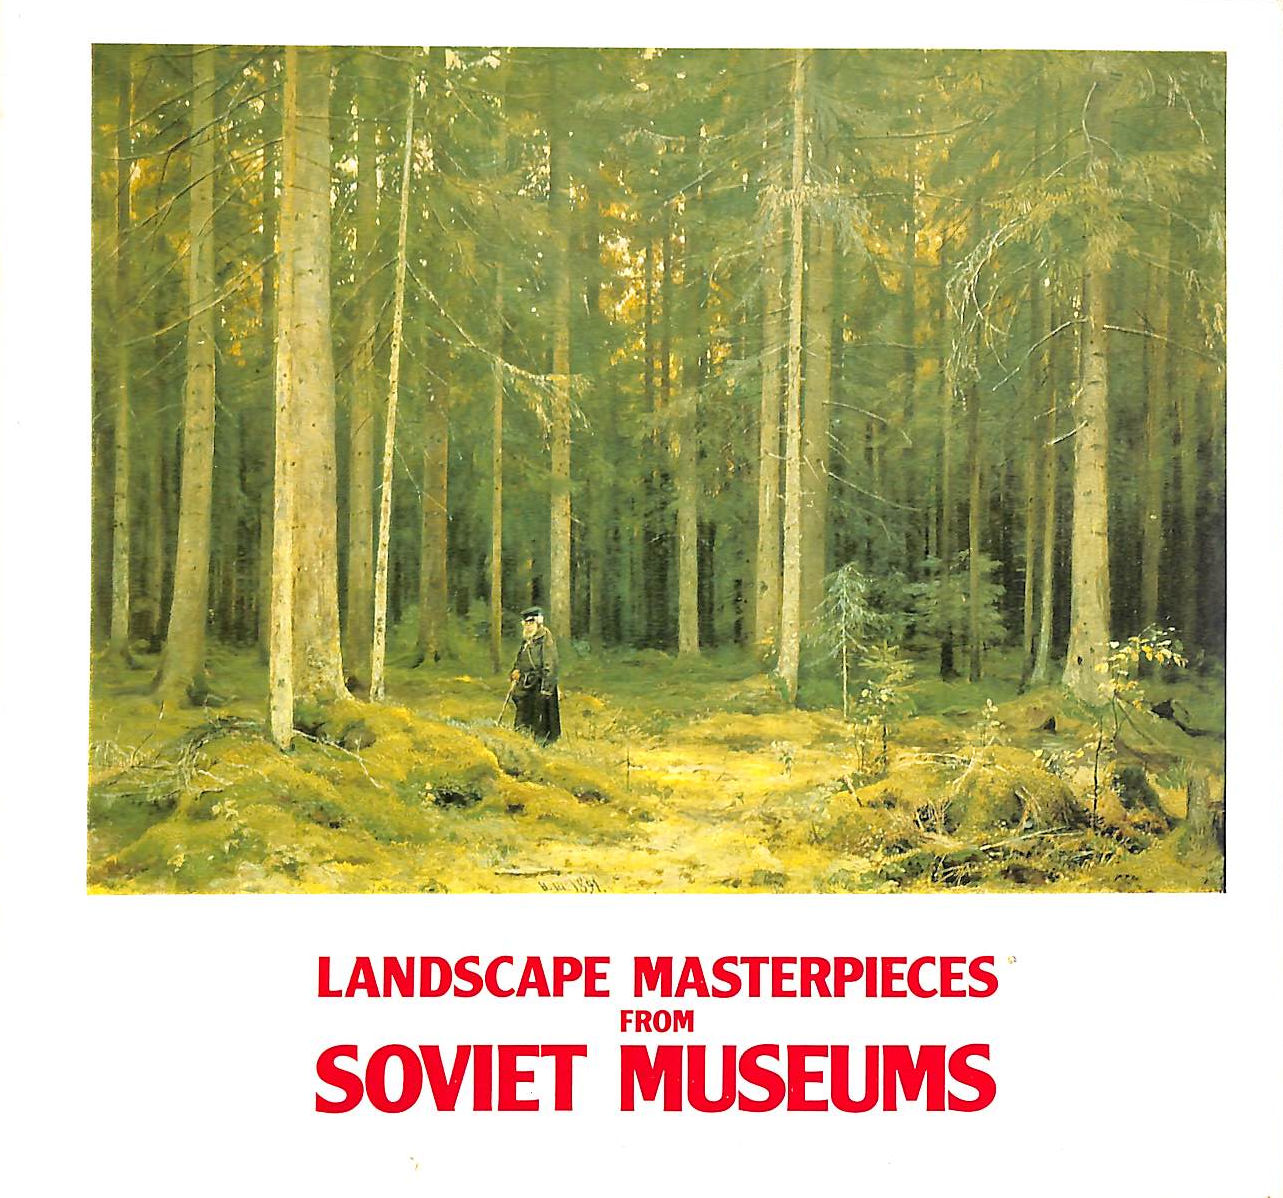 Image for Landscape masterpieces from Soviet museums: [catalogue of an exhibition held] 18 October-30 November 1975, Royal Academy of Arts, London, 18 December,  January 1976, Glasgow Art Gallery and Museum